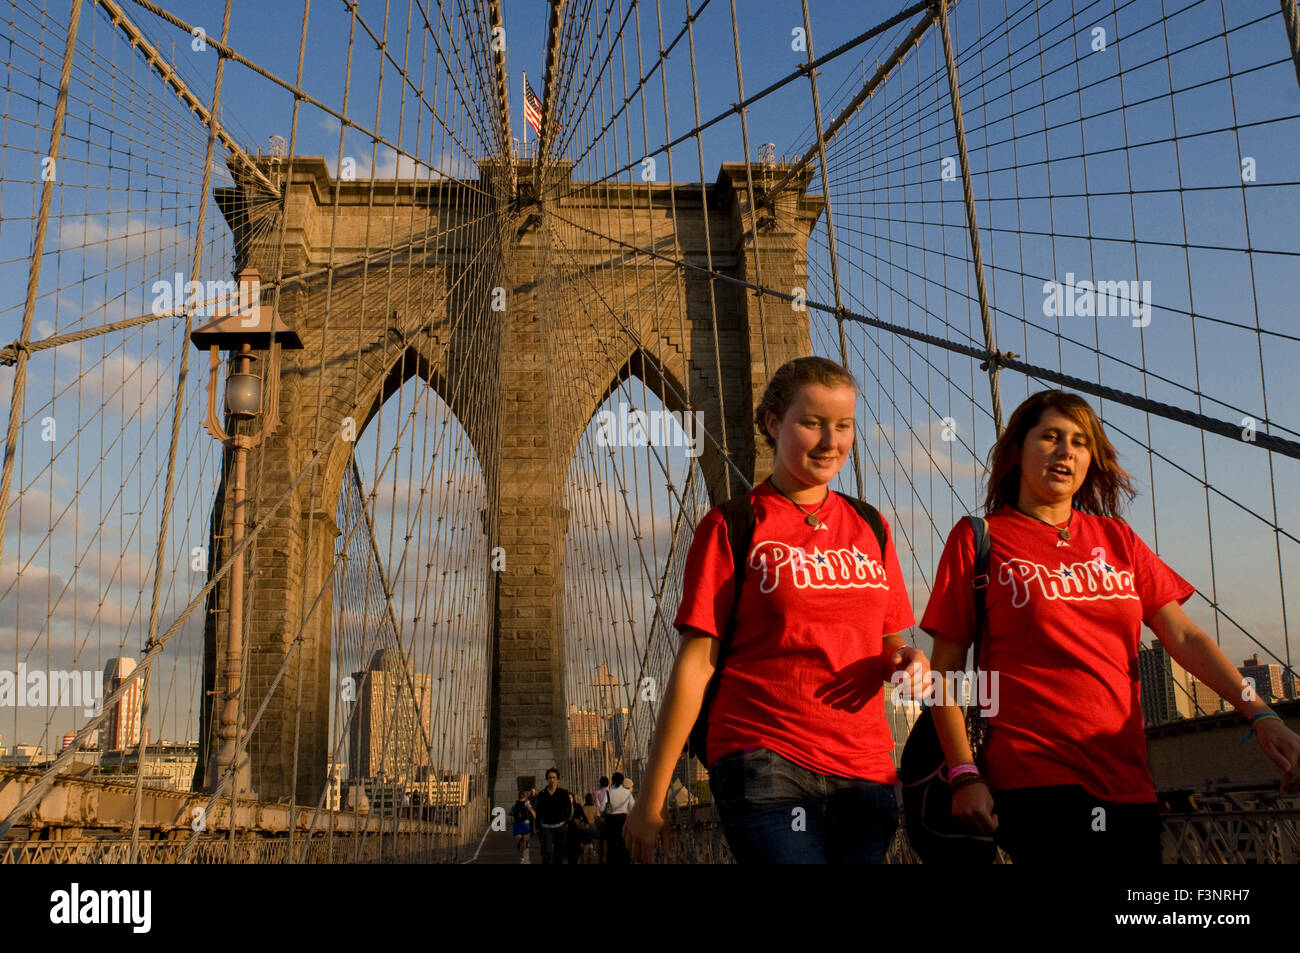 The Brooklyn Bridge is one of the oldest suspension bridges in the United States. 1.825my has a length of connecting - Stock Image